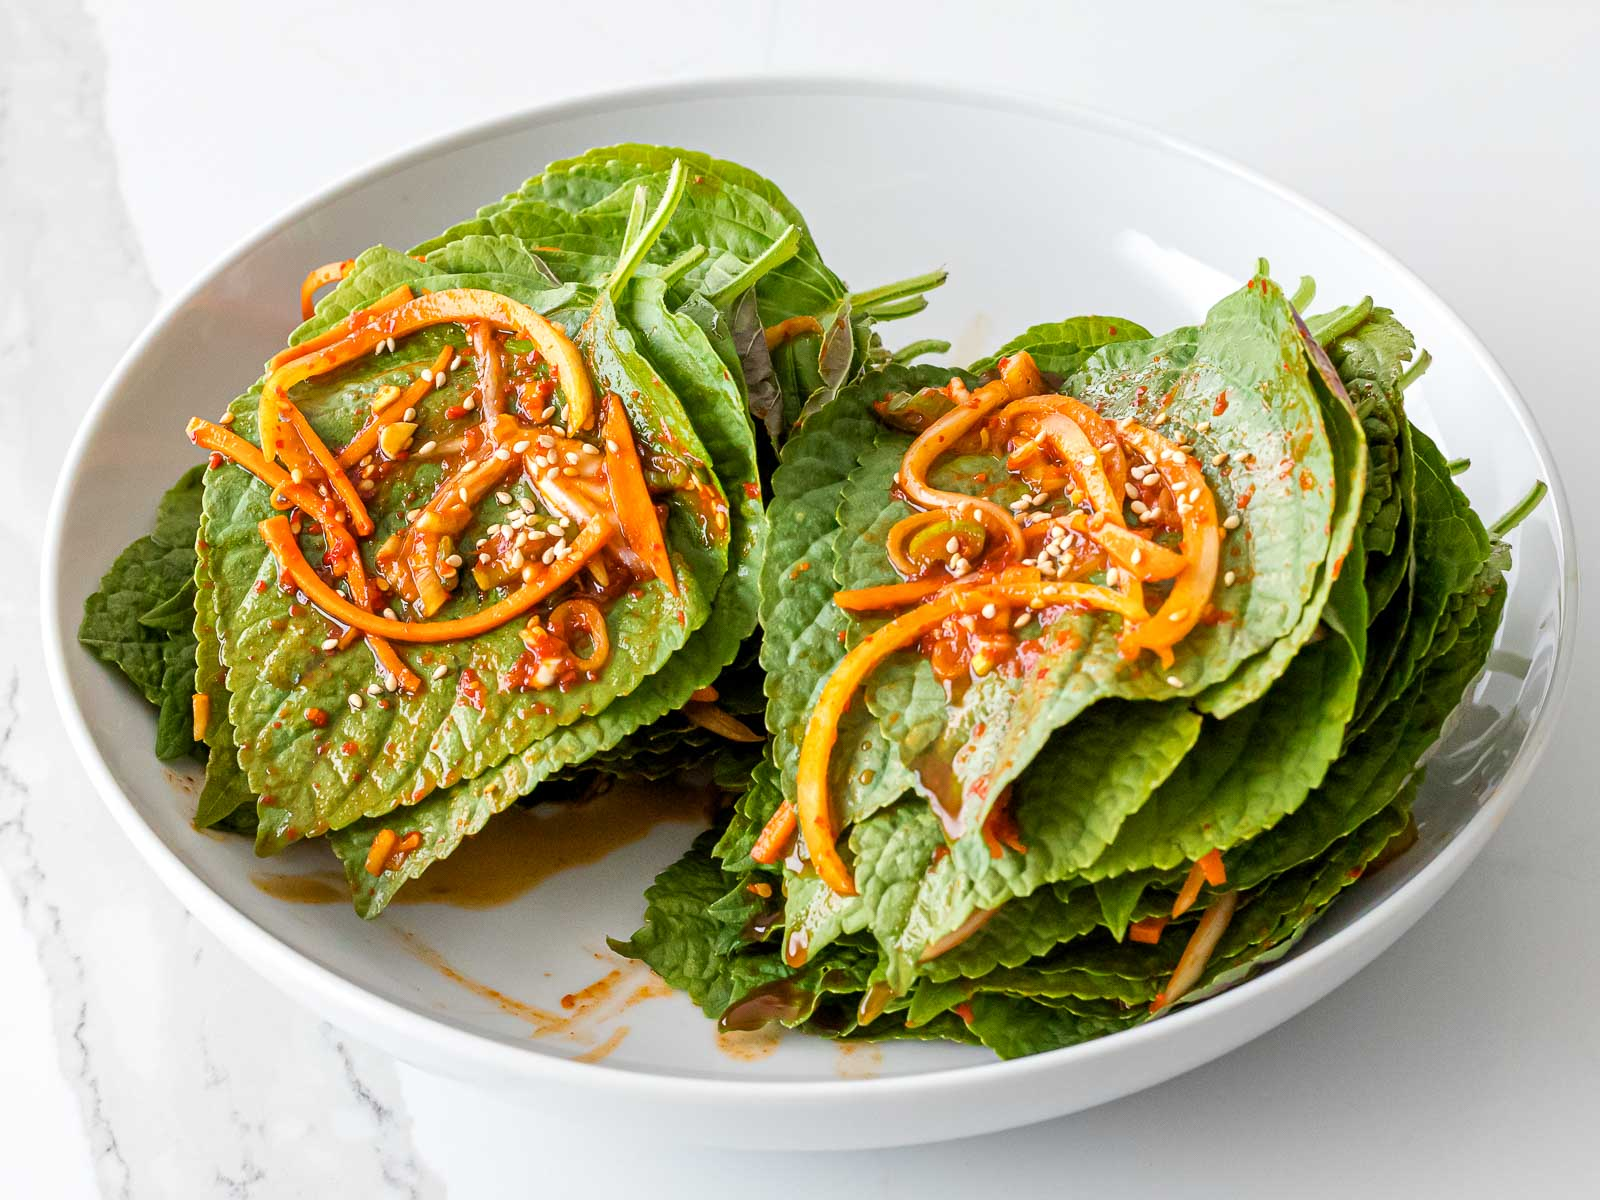 Korean perilla leaves with kimchi marinade in a white bowl